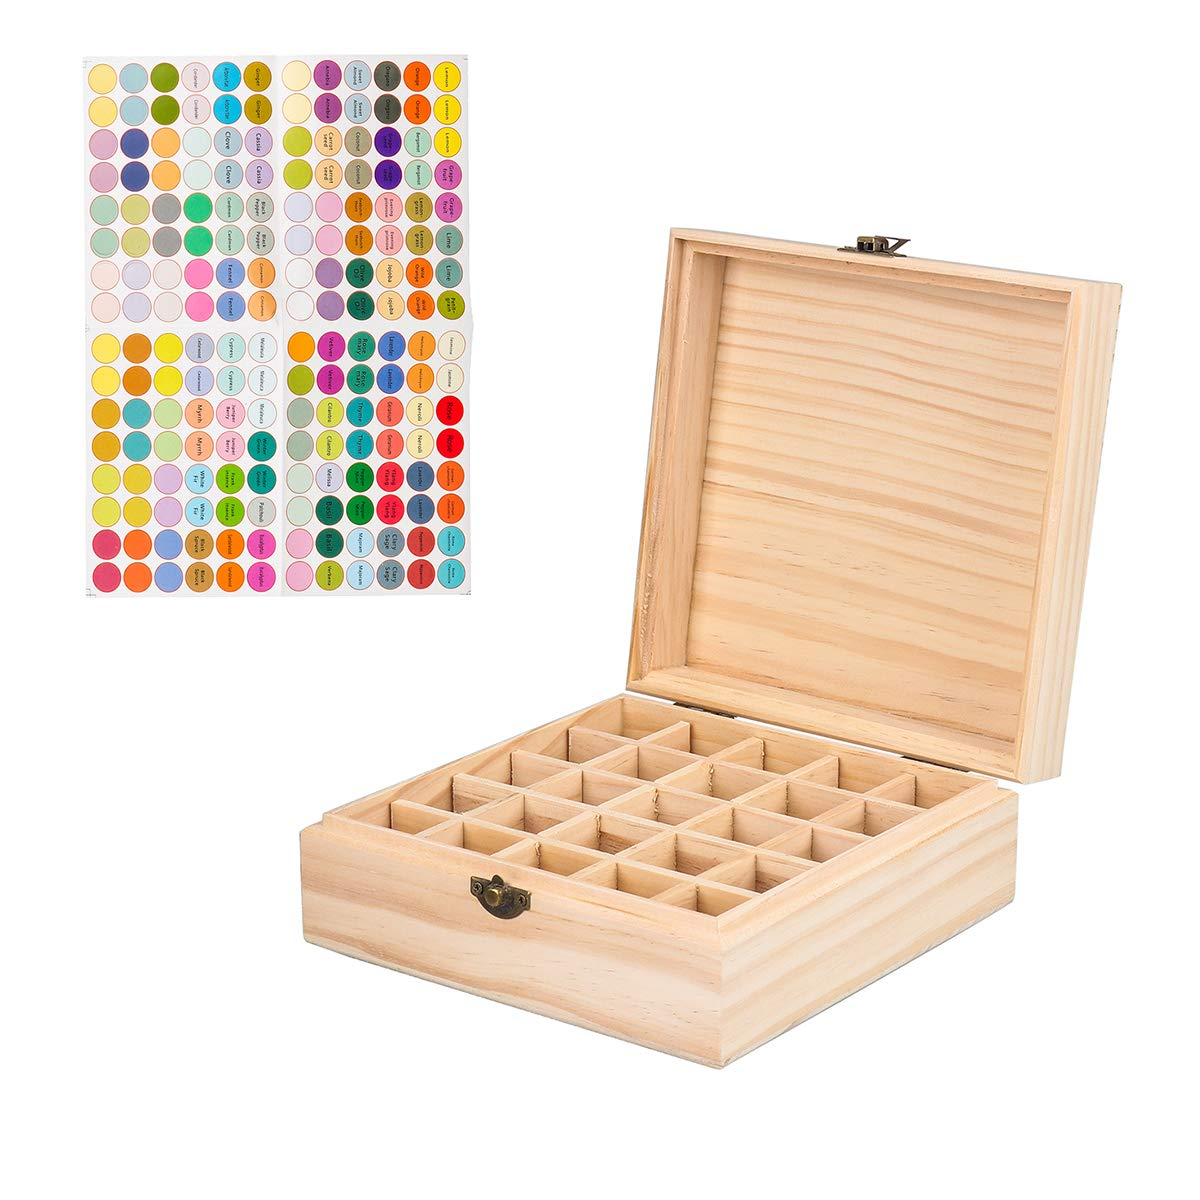 25 Slot Wooden Essential Oil Box/case, Holds 5ml /10 ml /15 ml Bottles, Perfect Essential Oil Storage/Organizer Case for Travel and Presentation Wei Xi